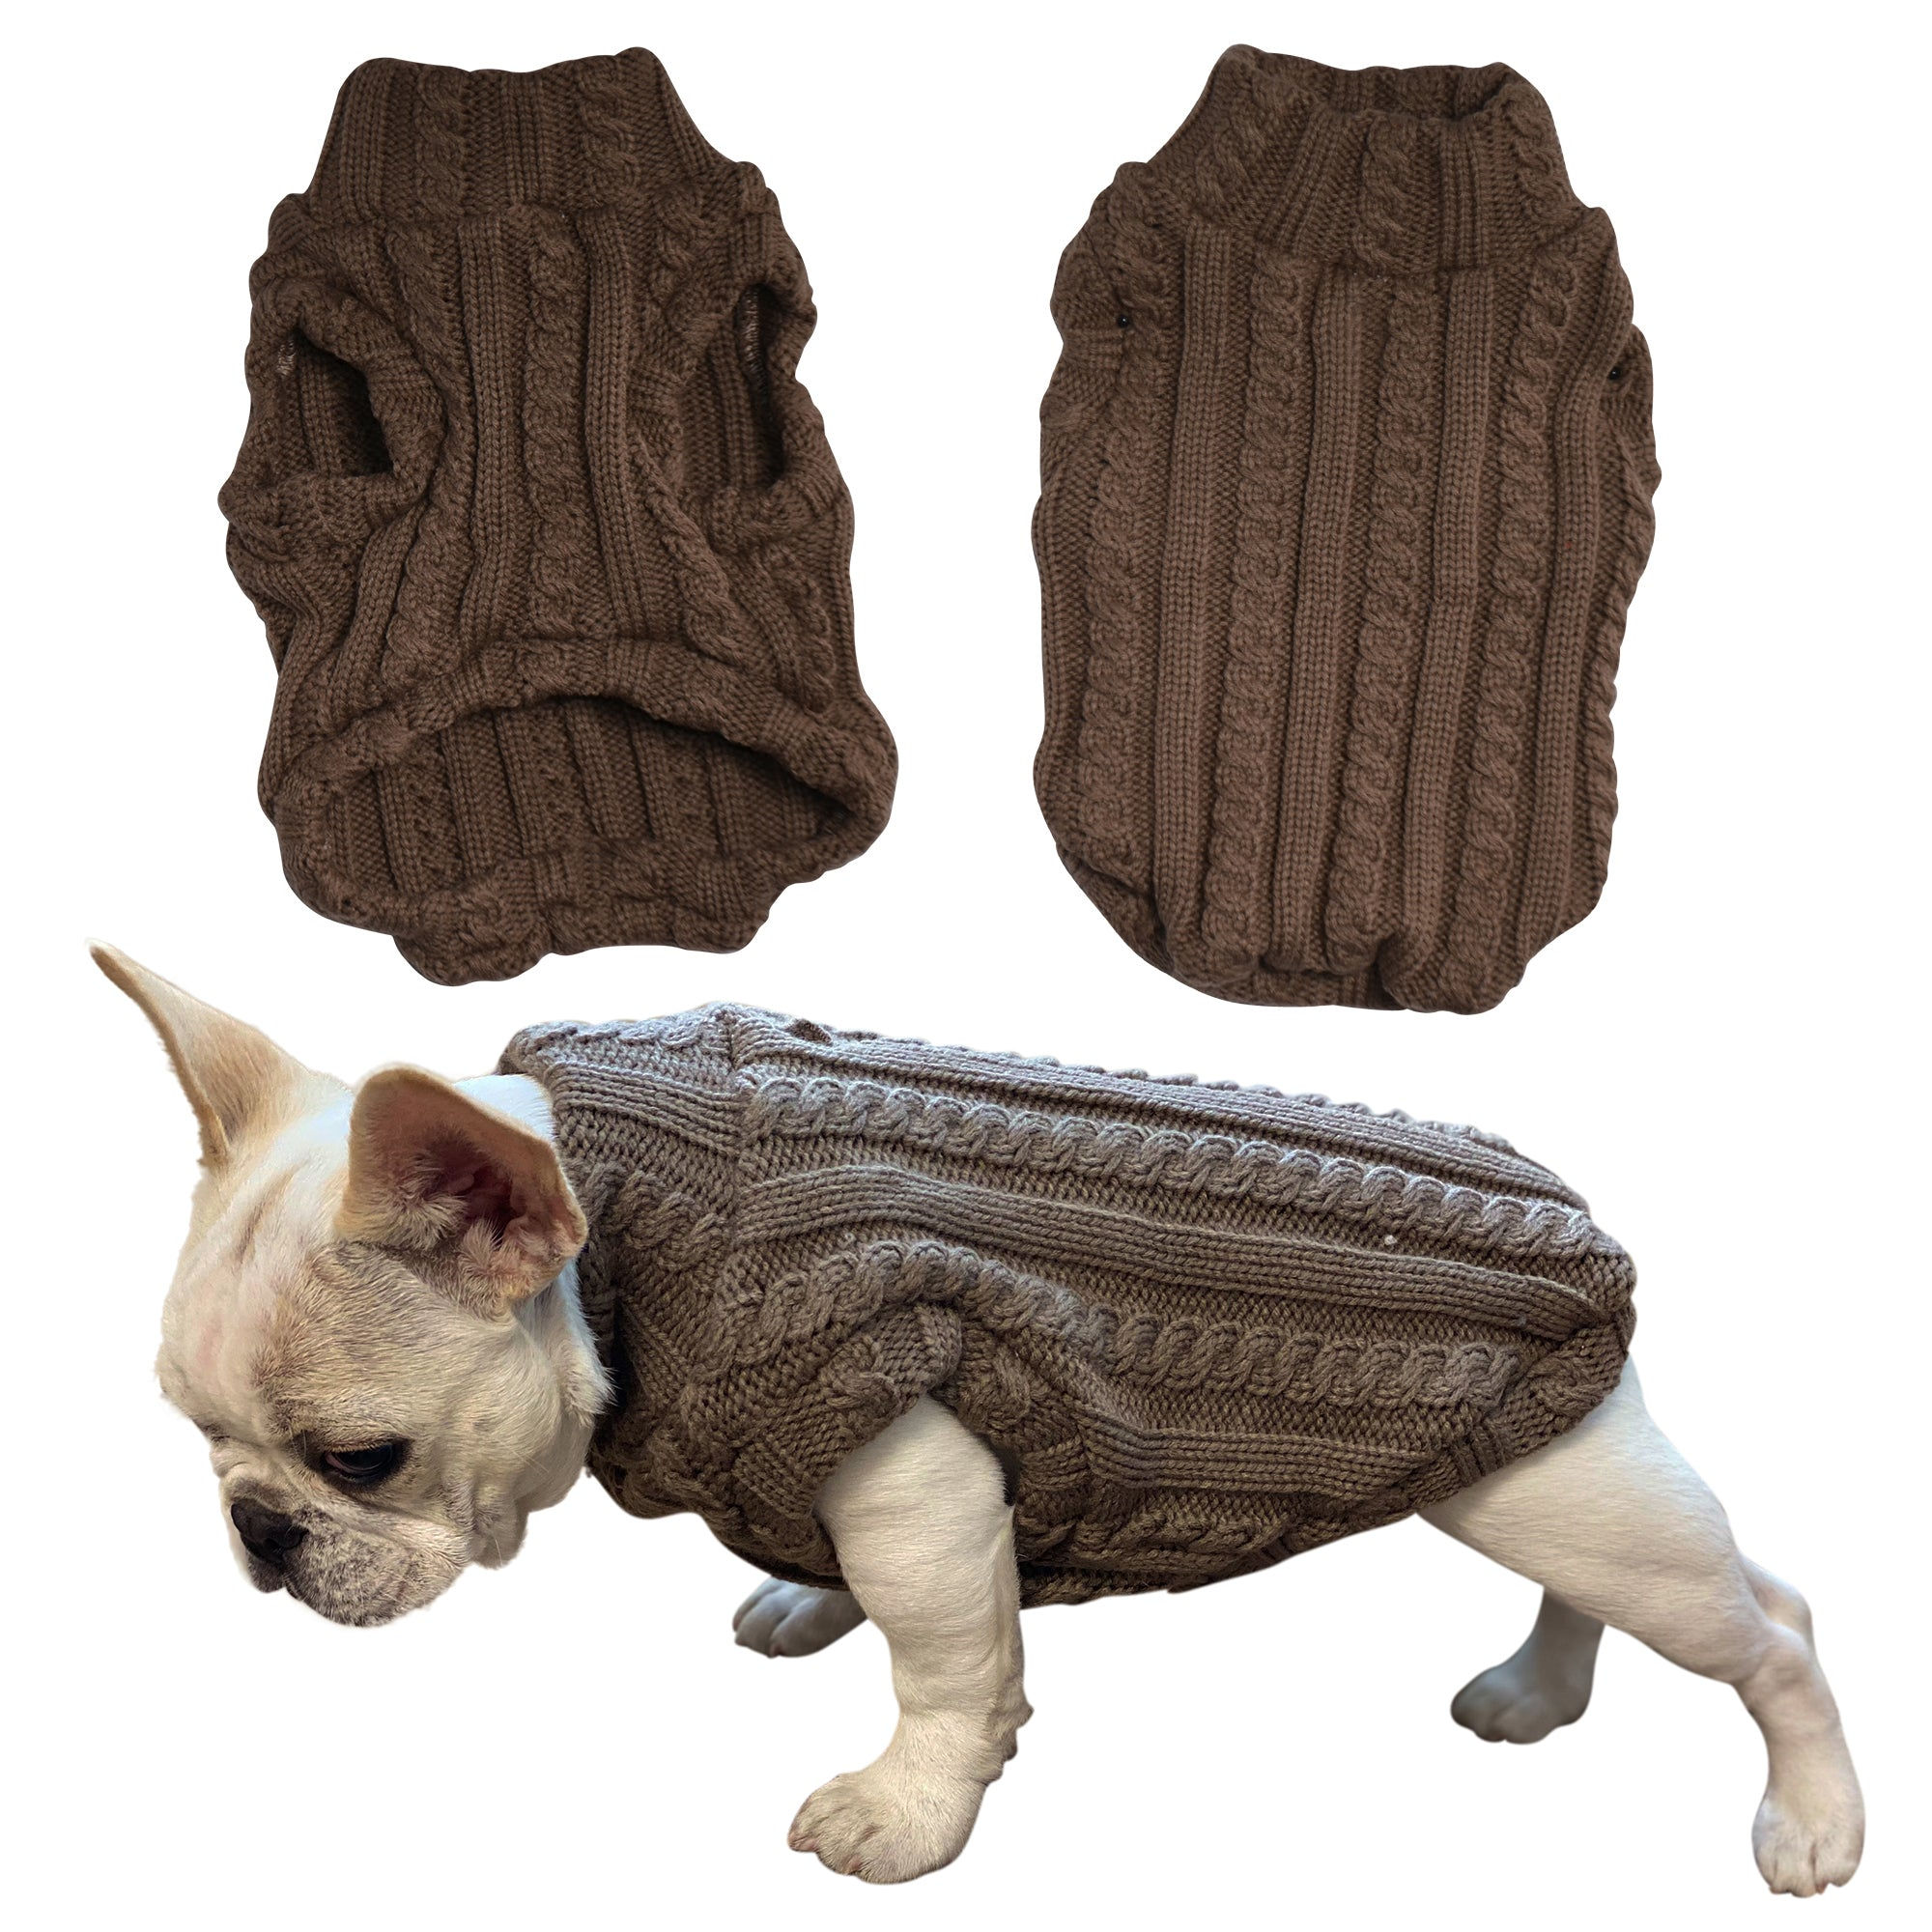 Turtleneck Dog Sweater - primewareinc